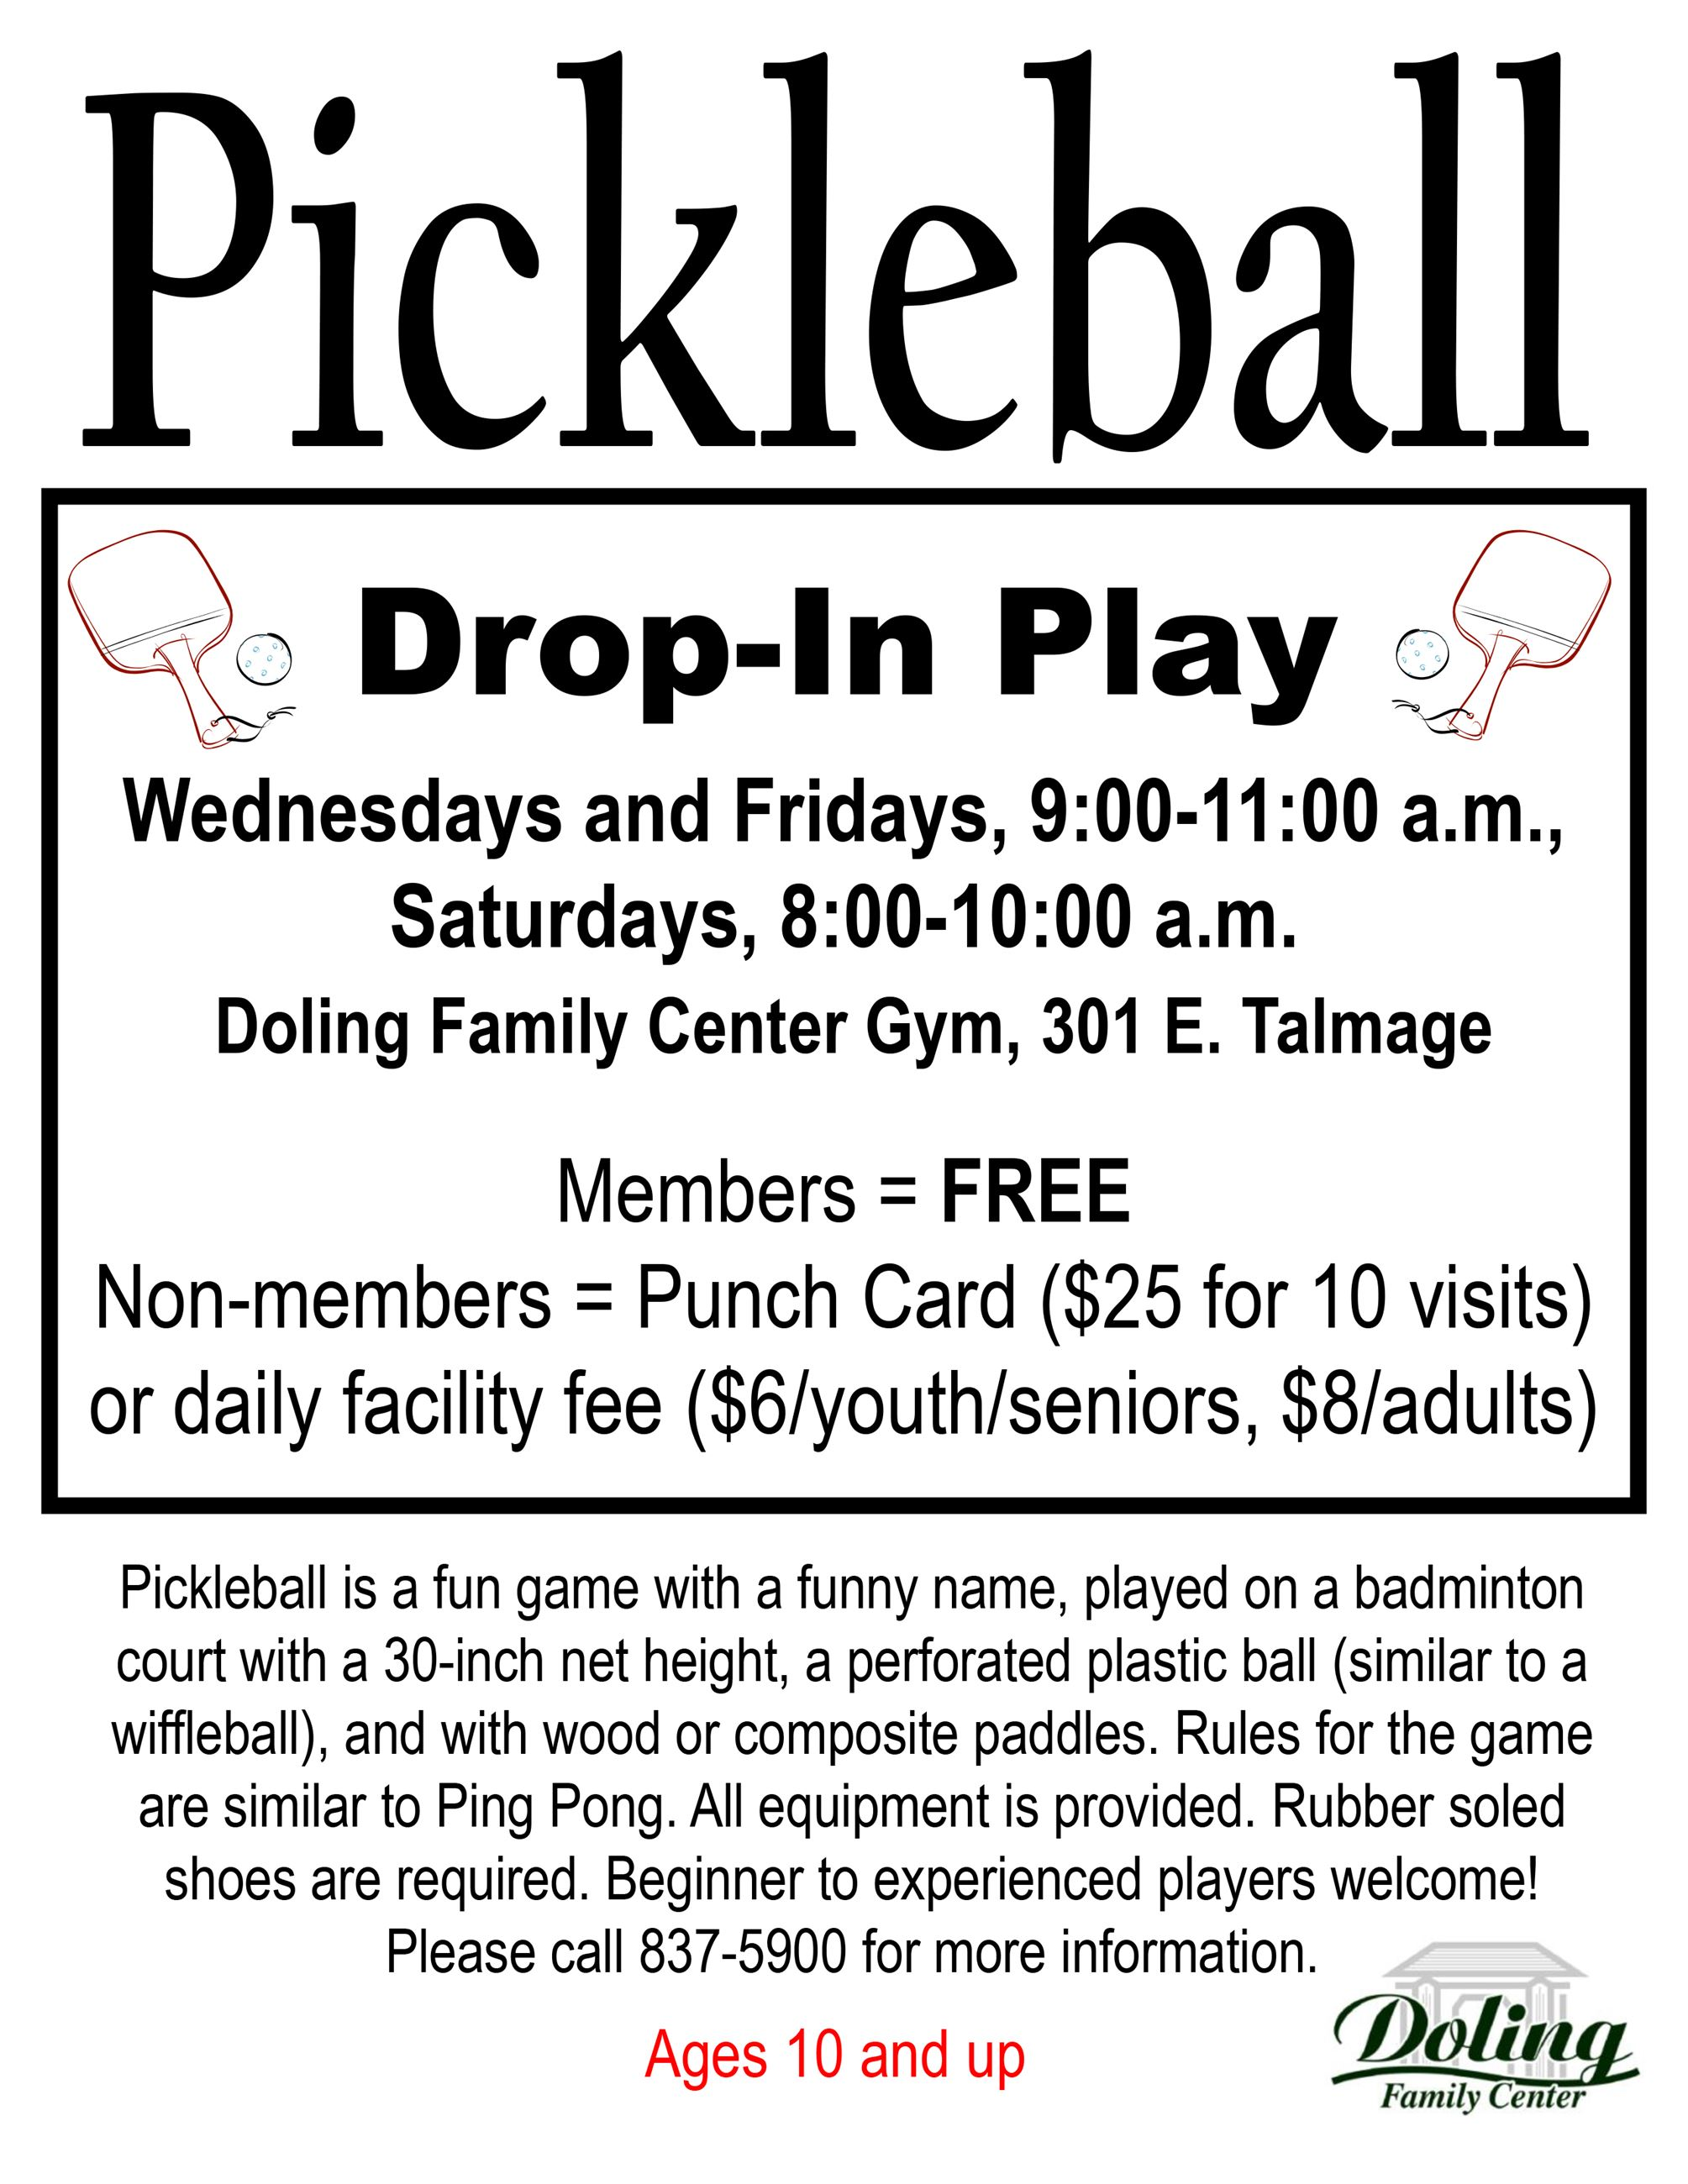 Pickleball Flyer